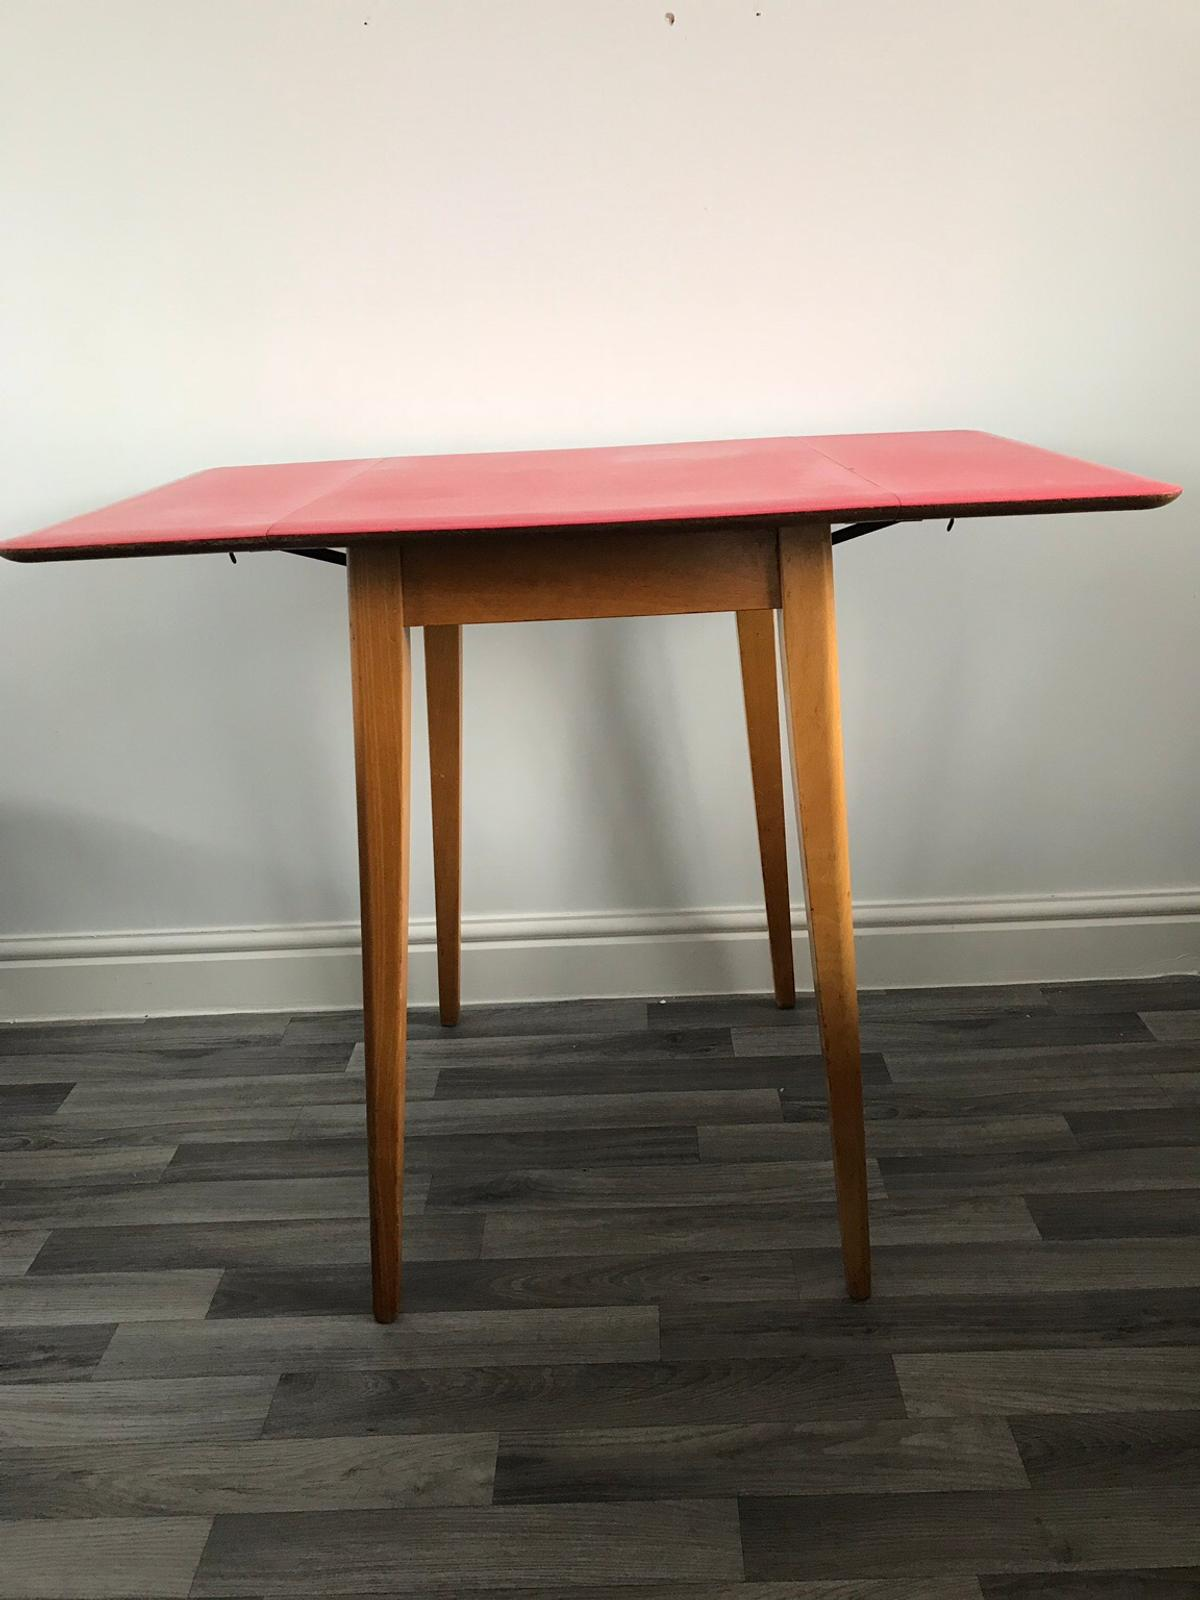 1950s 60s Formica Retro Kitchen Table In B24 Birmingham For 20 00 For Sale Shpock